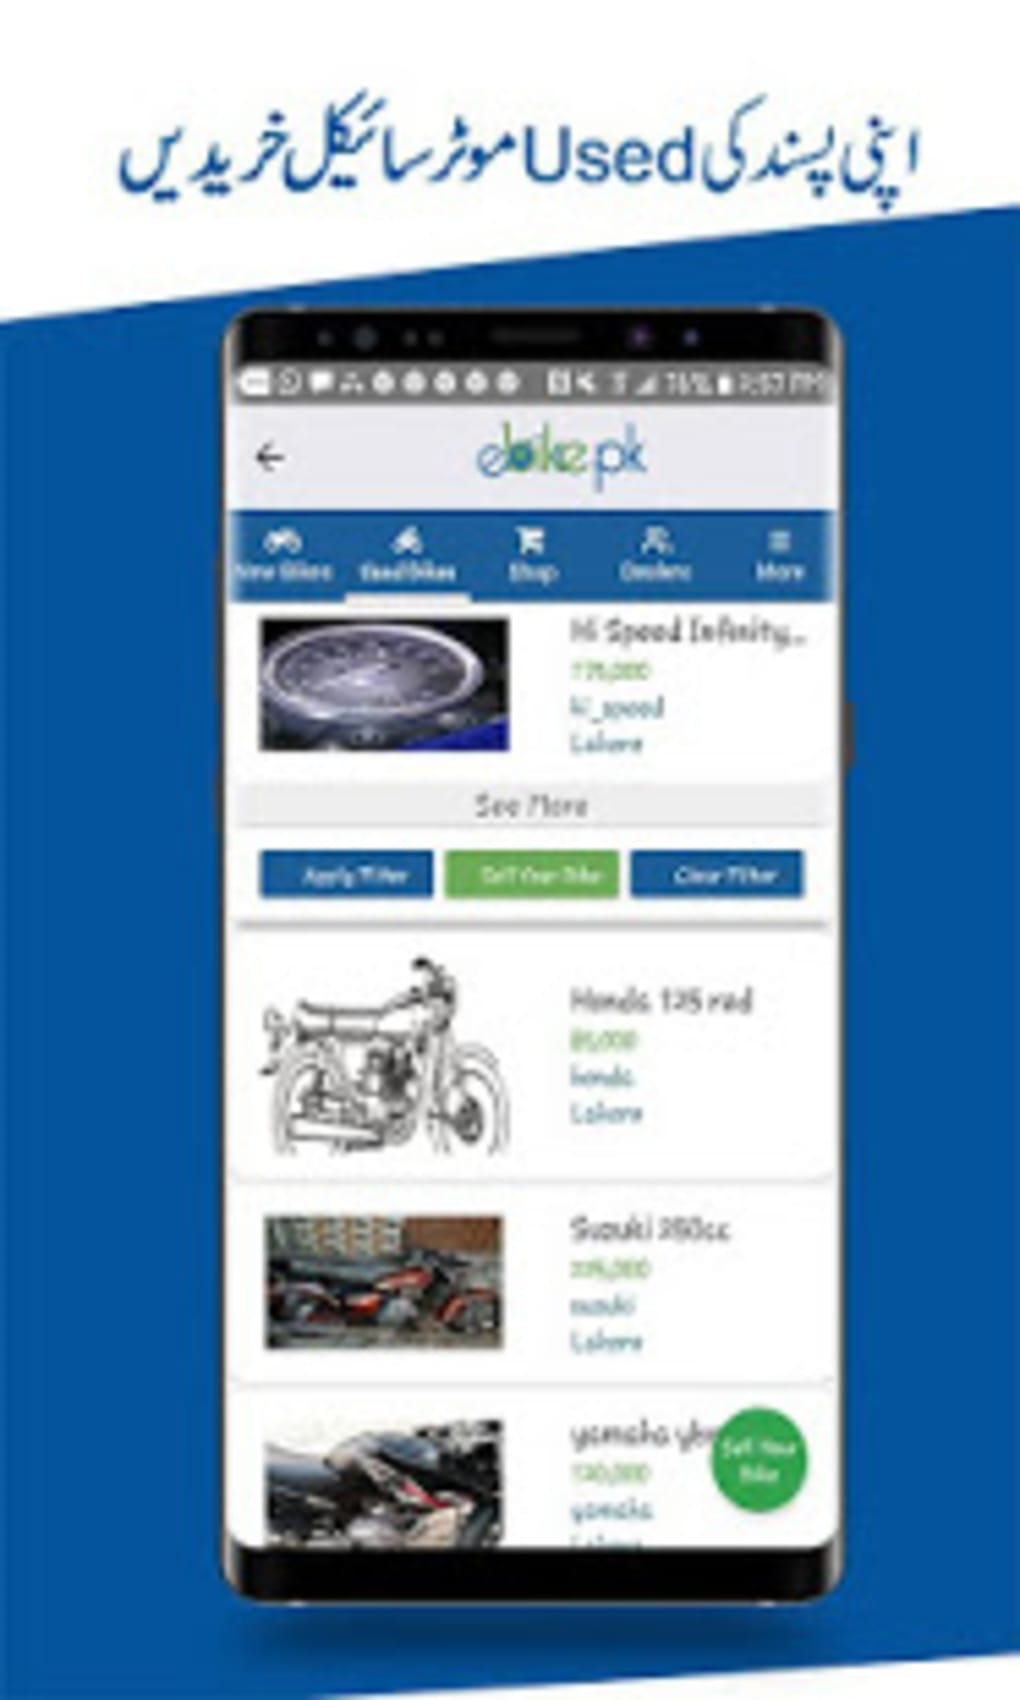 ebike pk: Buy Sell Used New Motorcycles Parts for Android